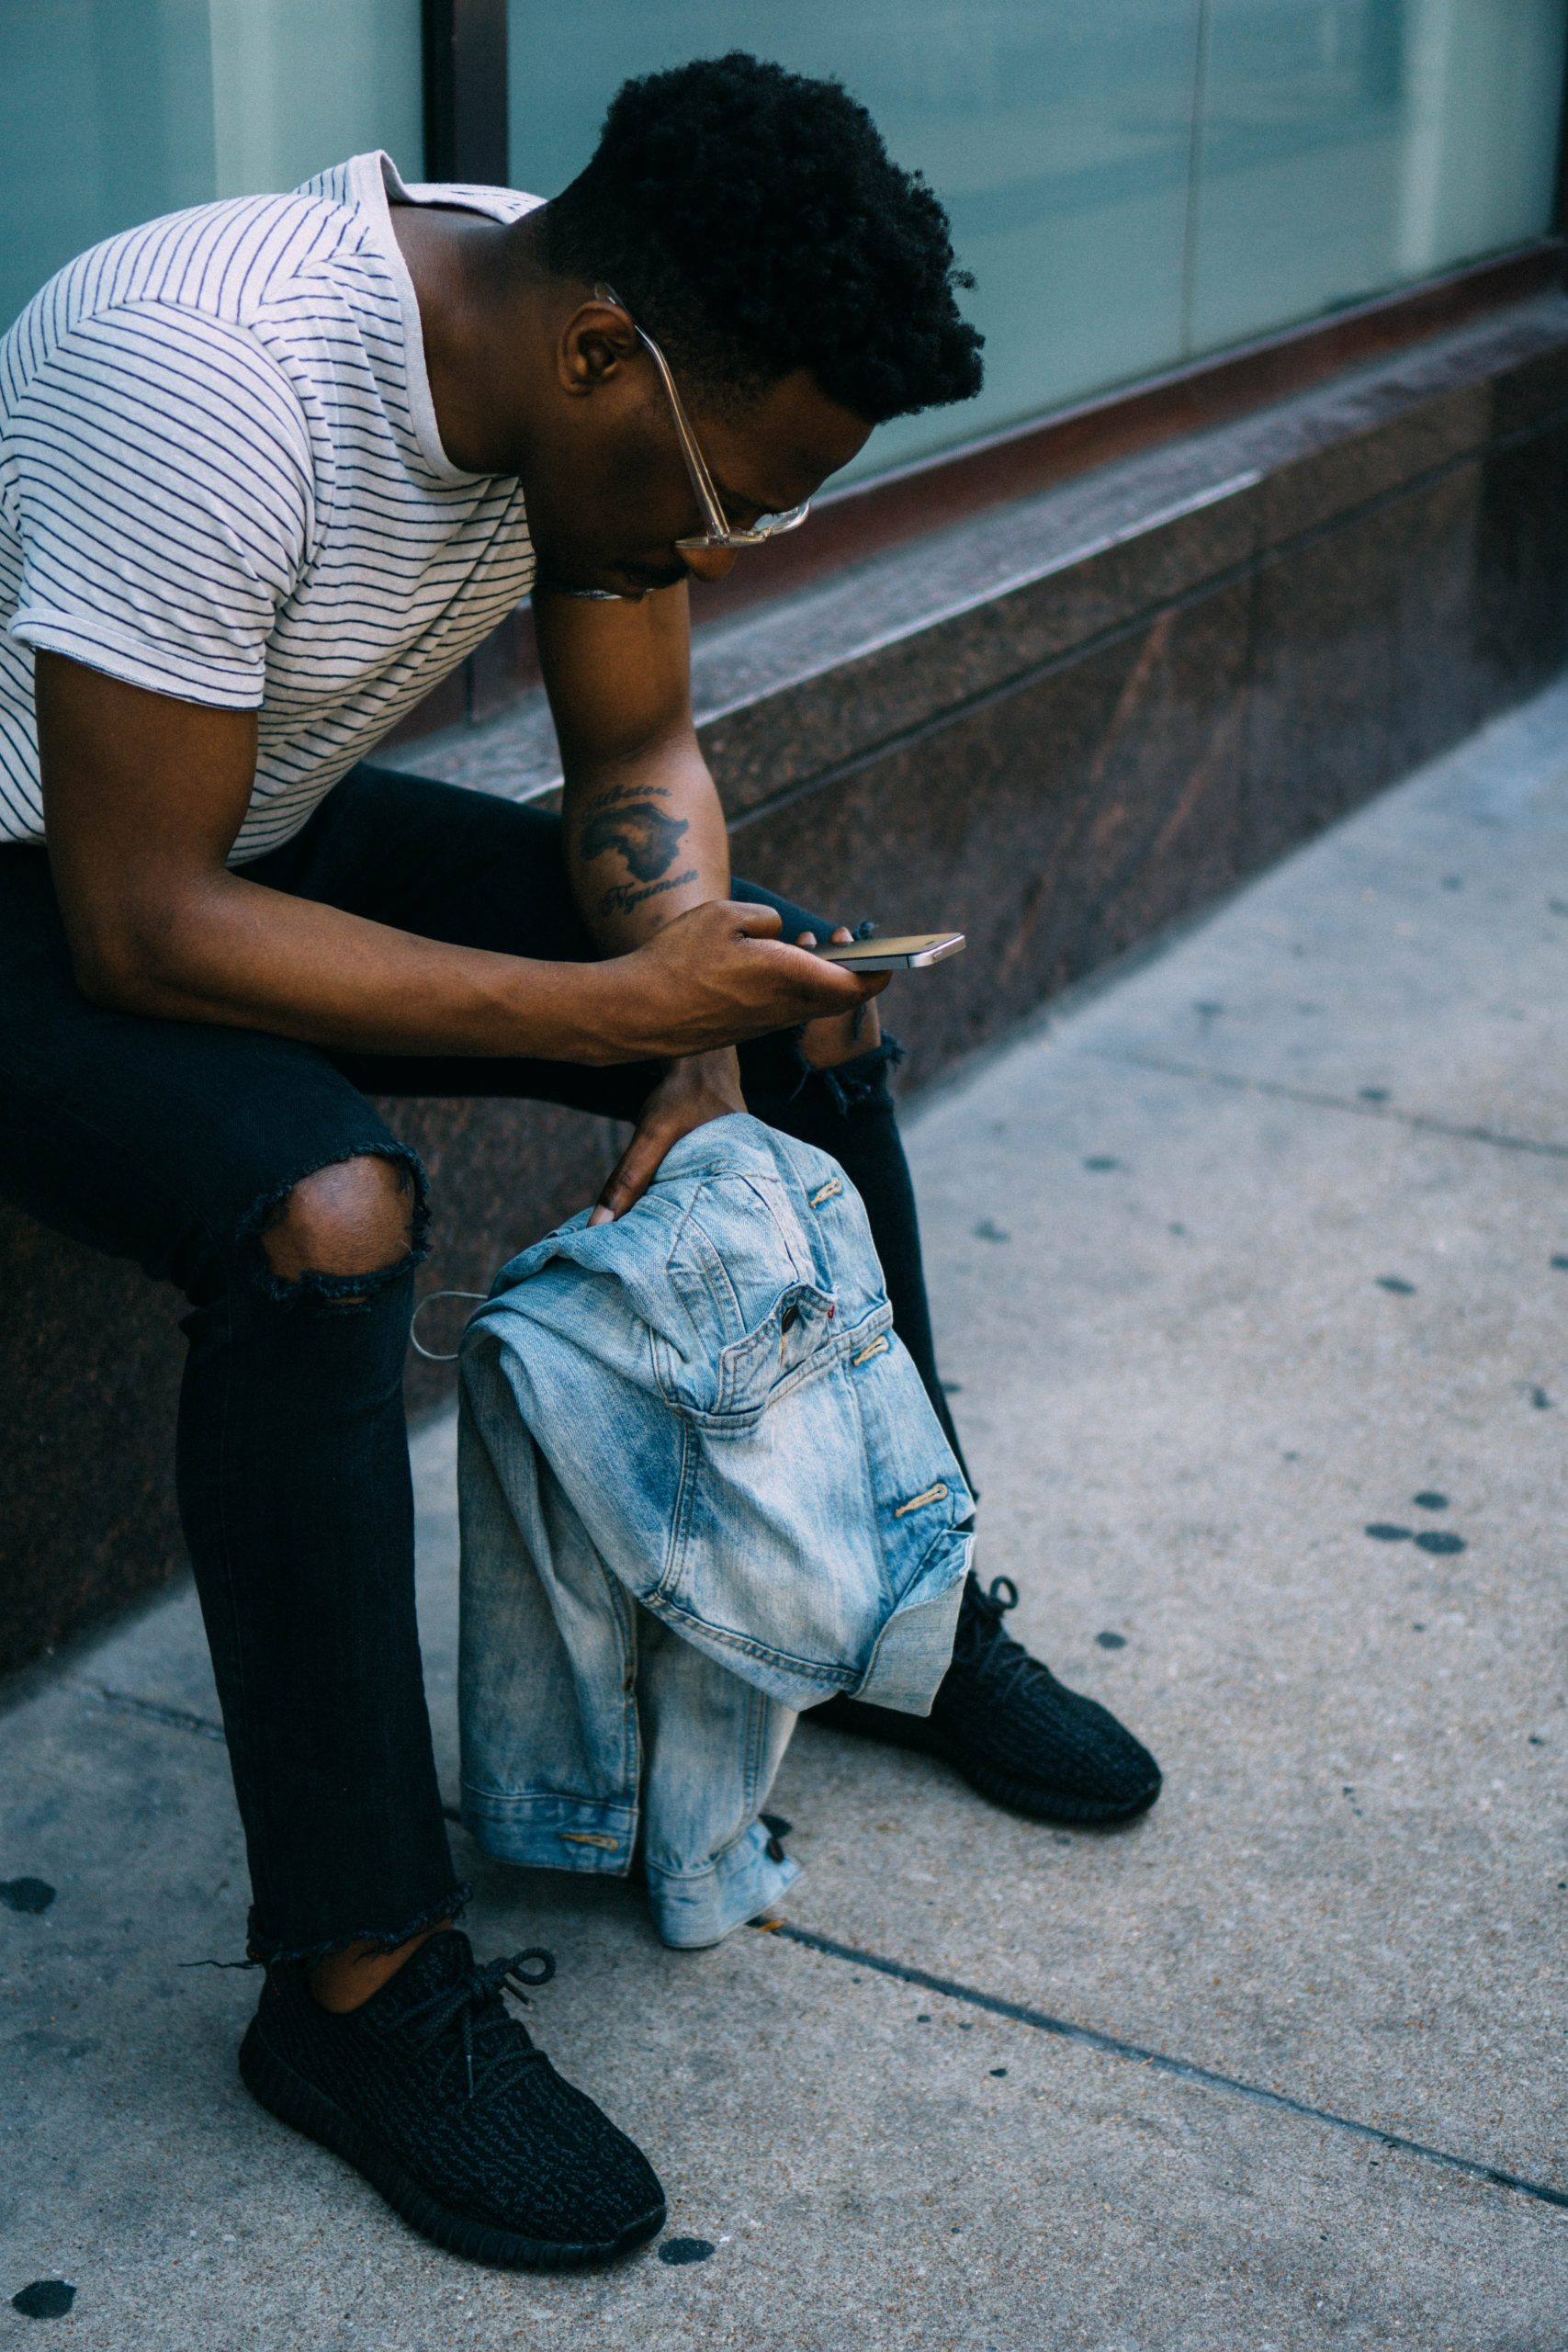 12.6.1 Texting and Posture